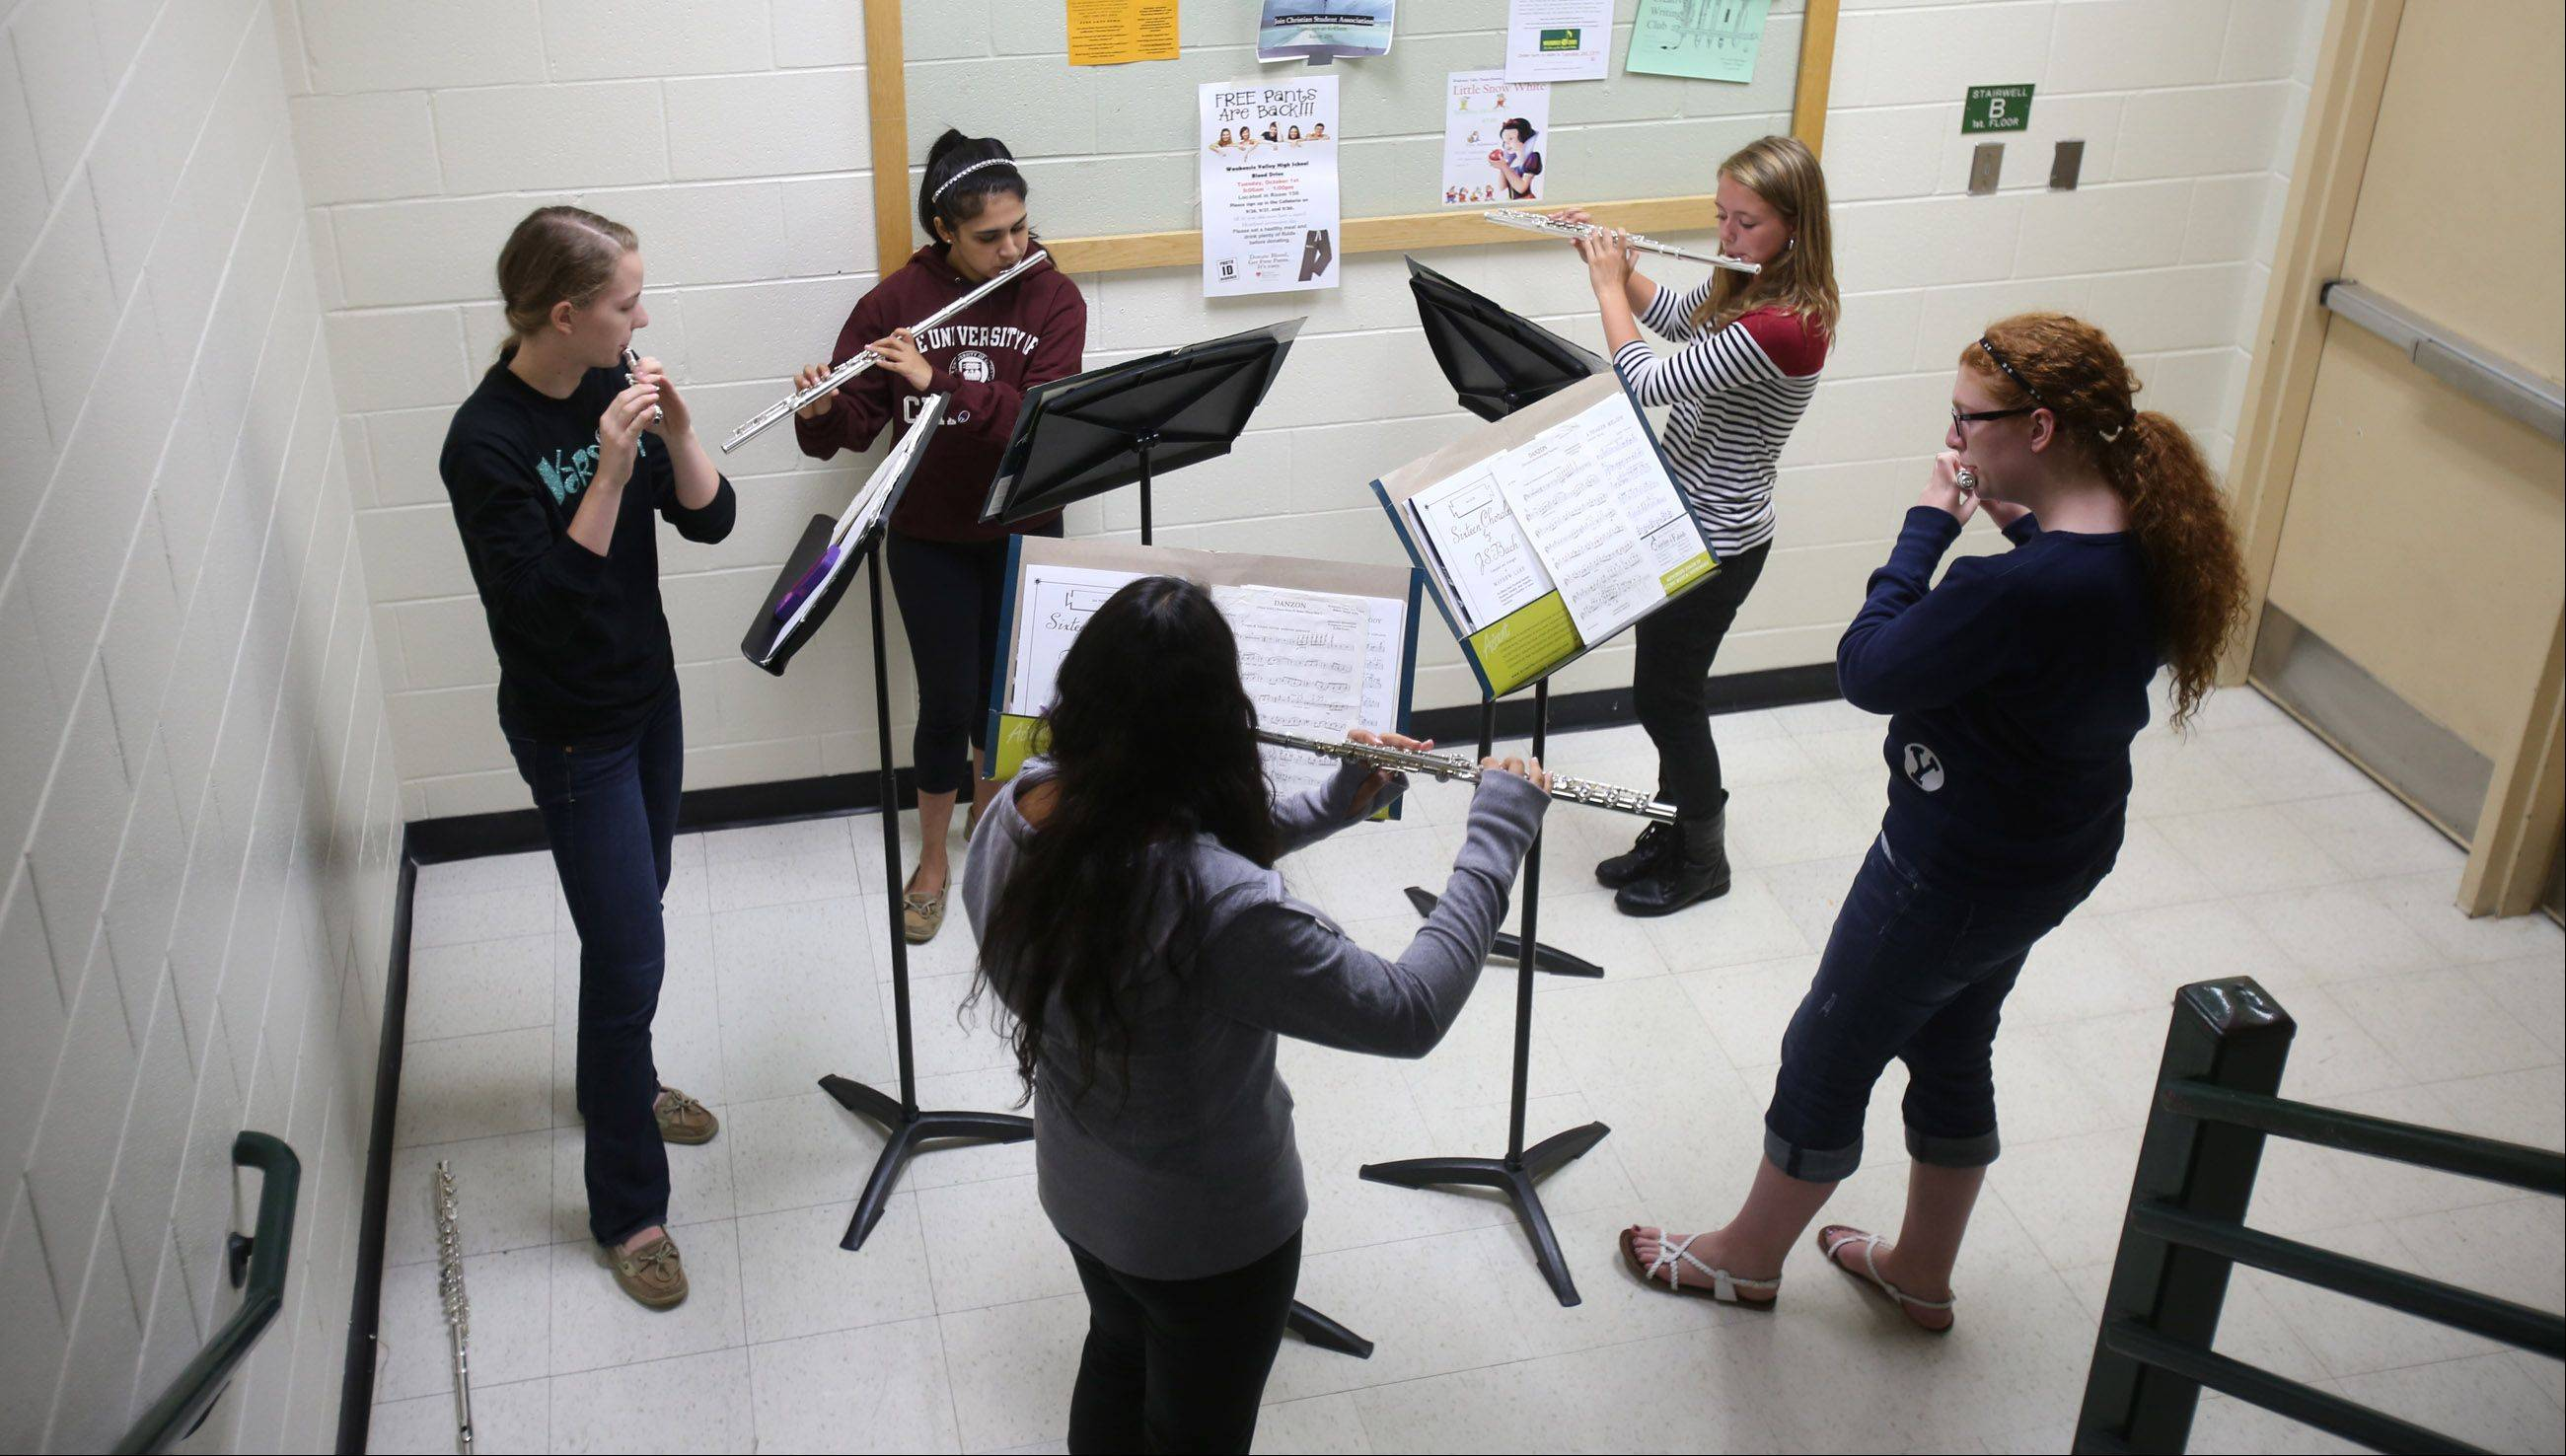 The Waubonsie Valley High School Wind Ensemble's flute players hold a sectional after a rehearsal led by Mark Duker, the school's fine arts department chairman, who is a semifinalist for the first Grammy award for music educators.